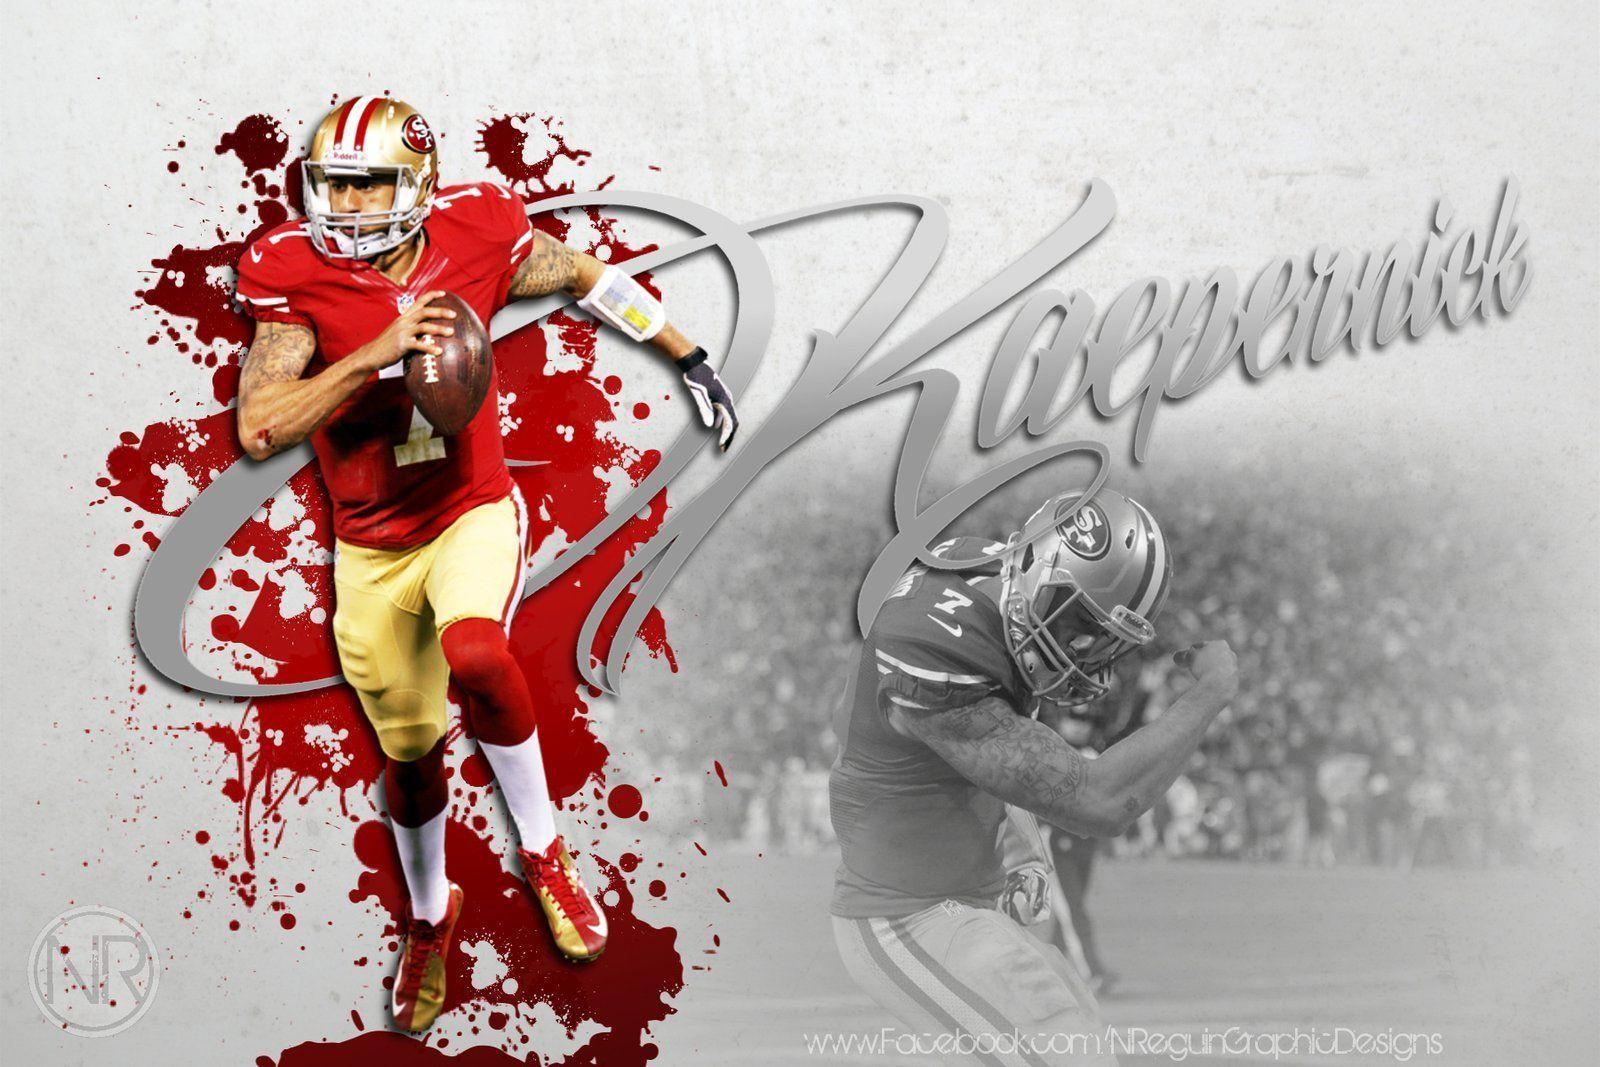 Colin Kaepernick 49ers Wallpapers 1600x1067